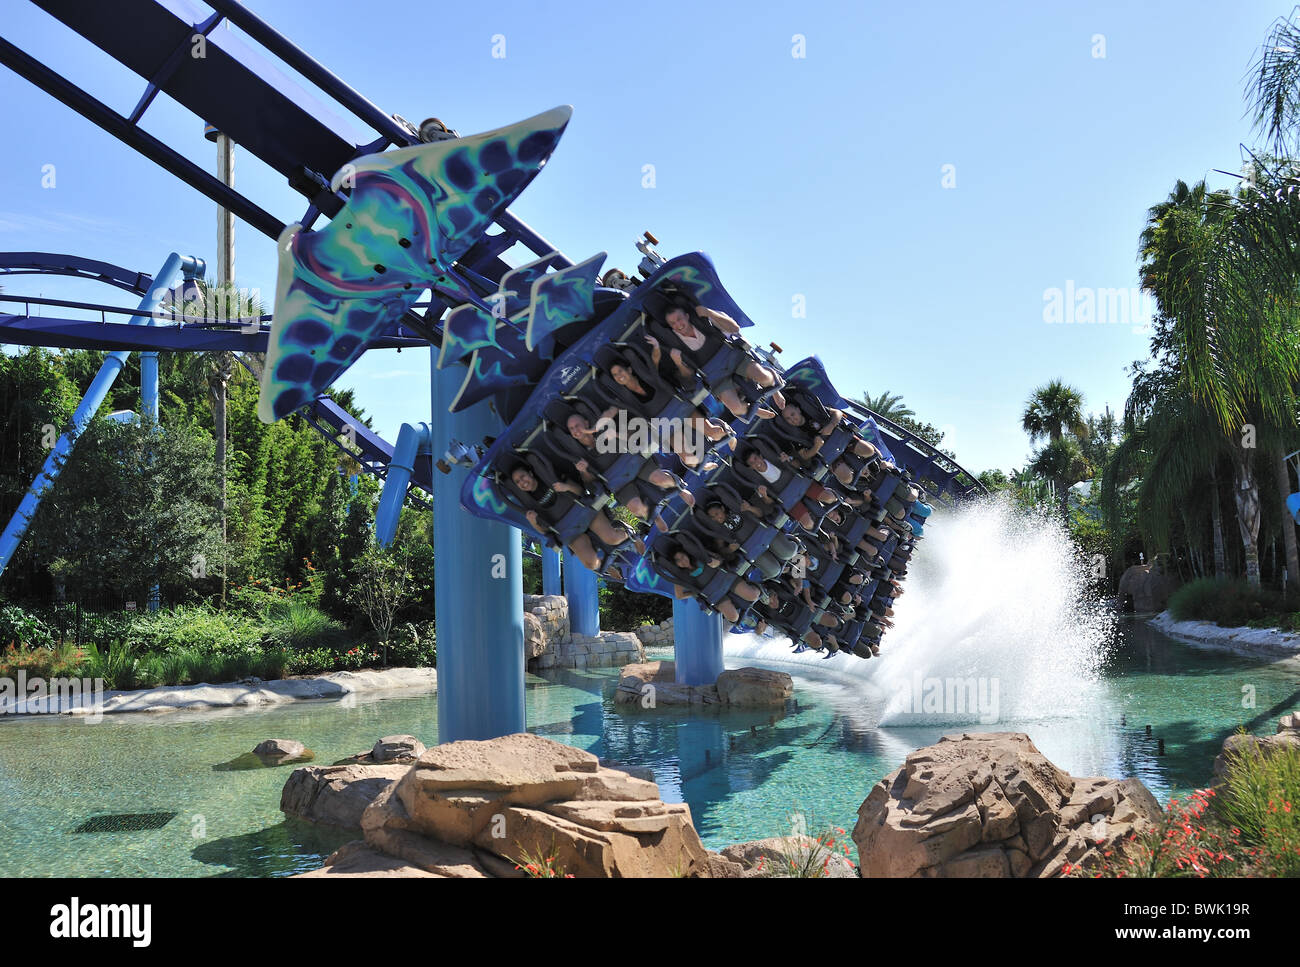 Manta ride Seaworld Orlando Florida Stock Photo